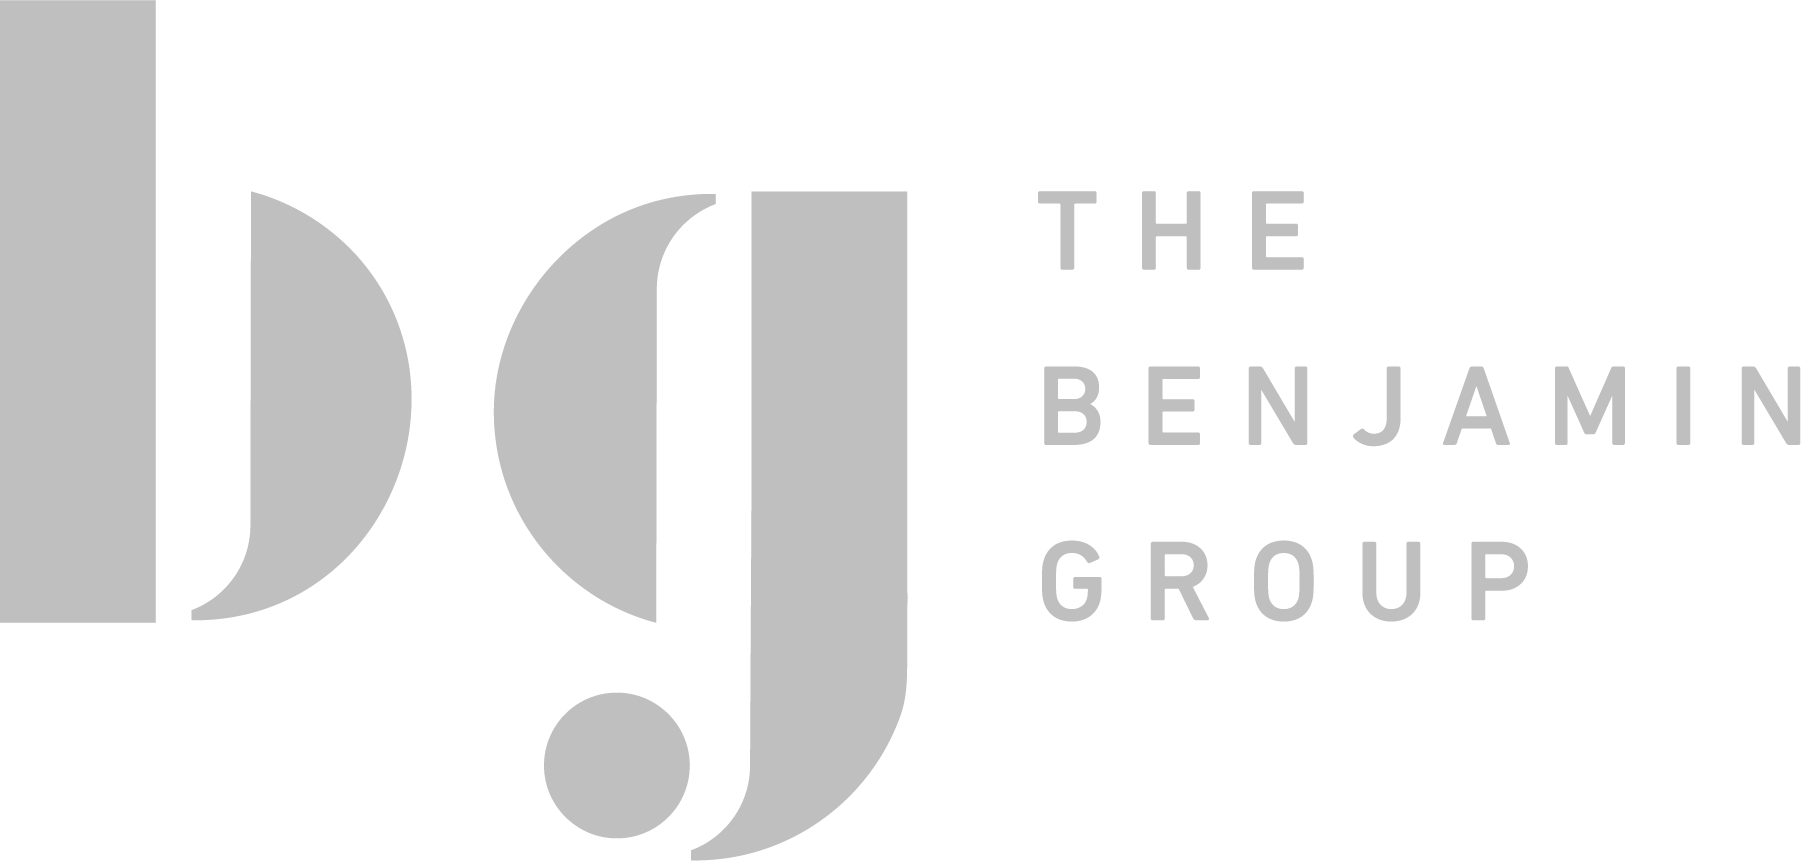 The Benjamin Group